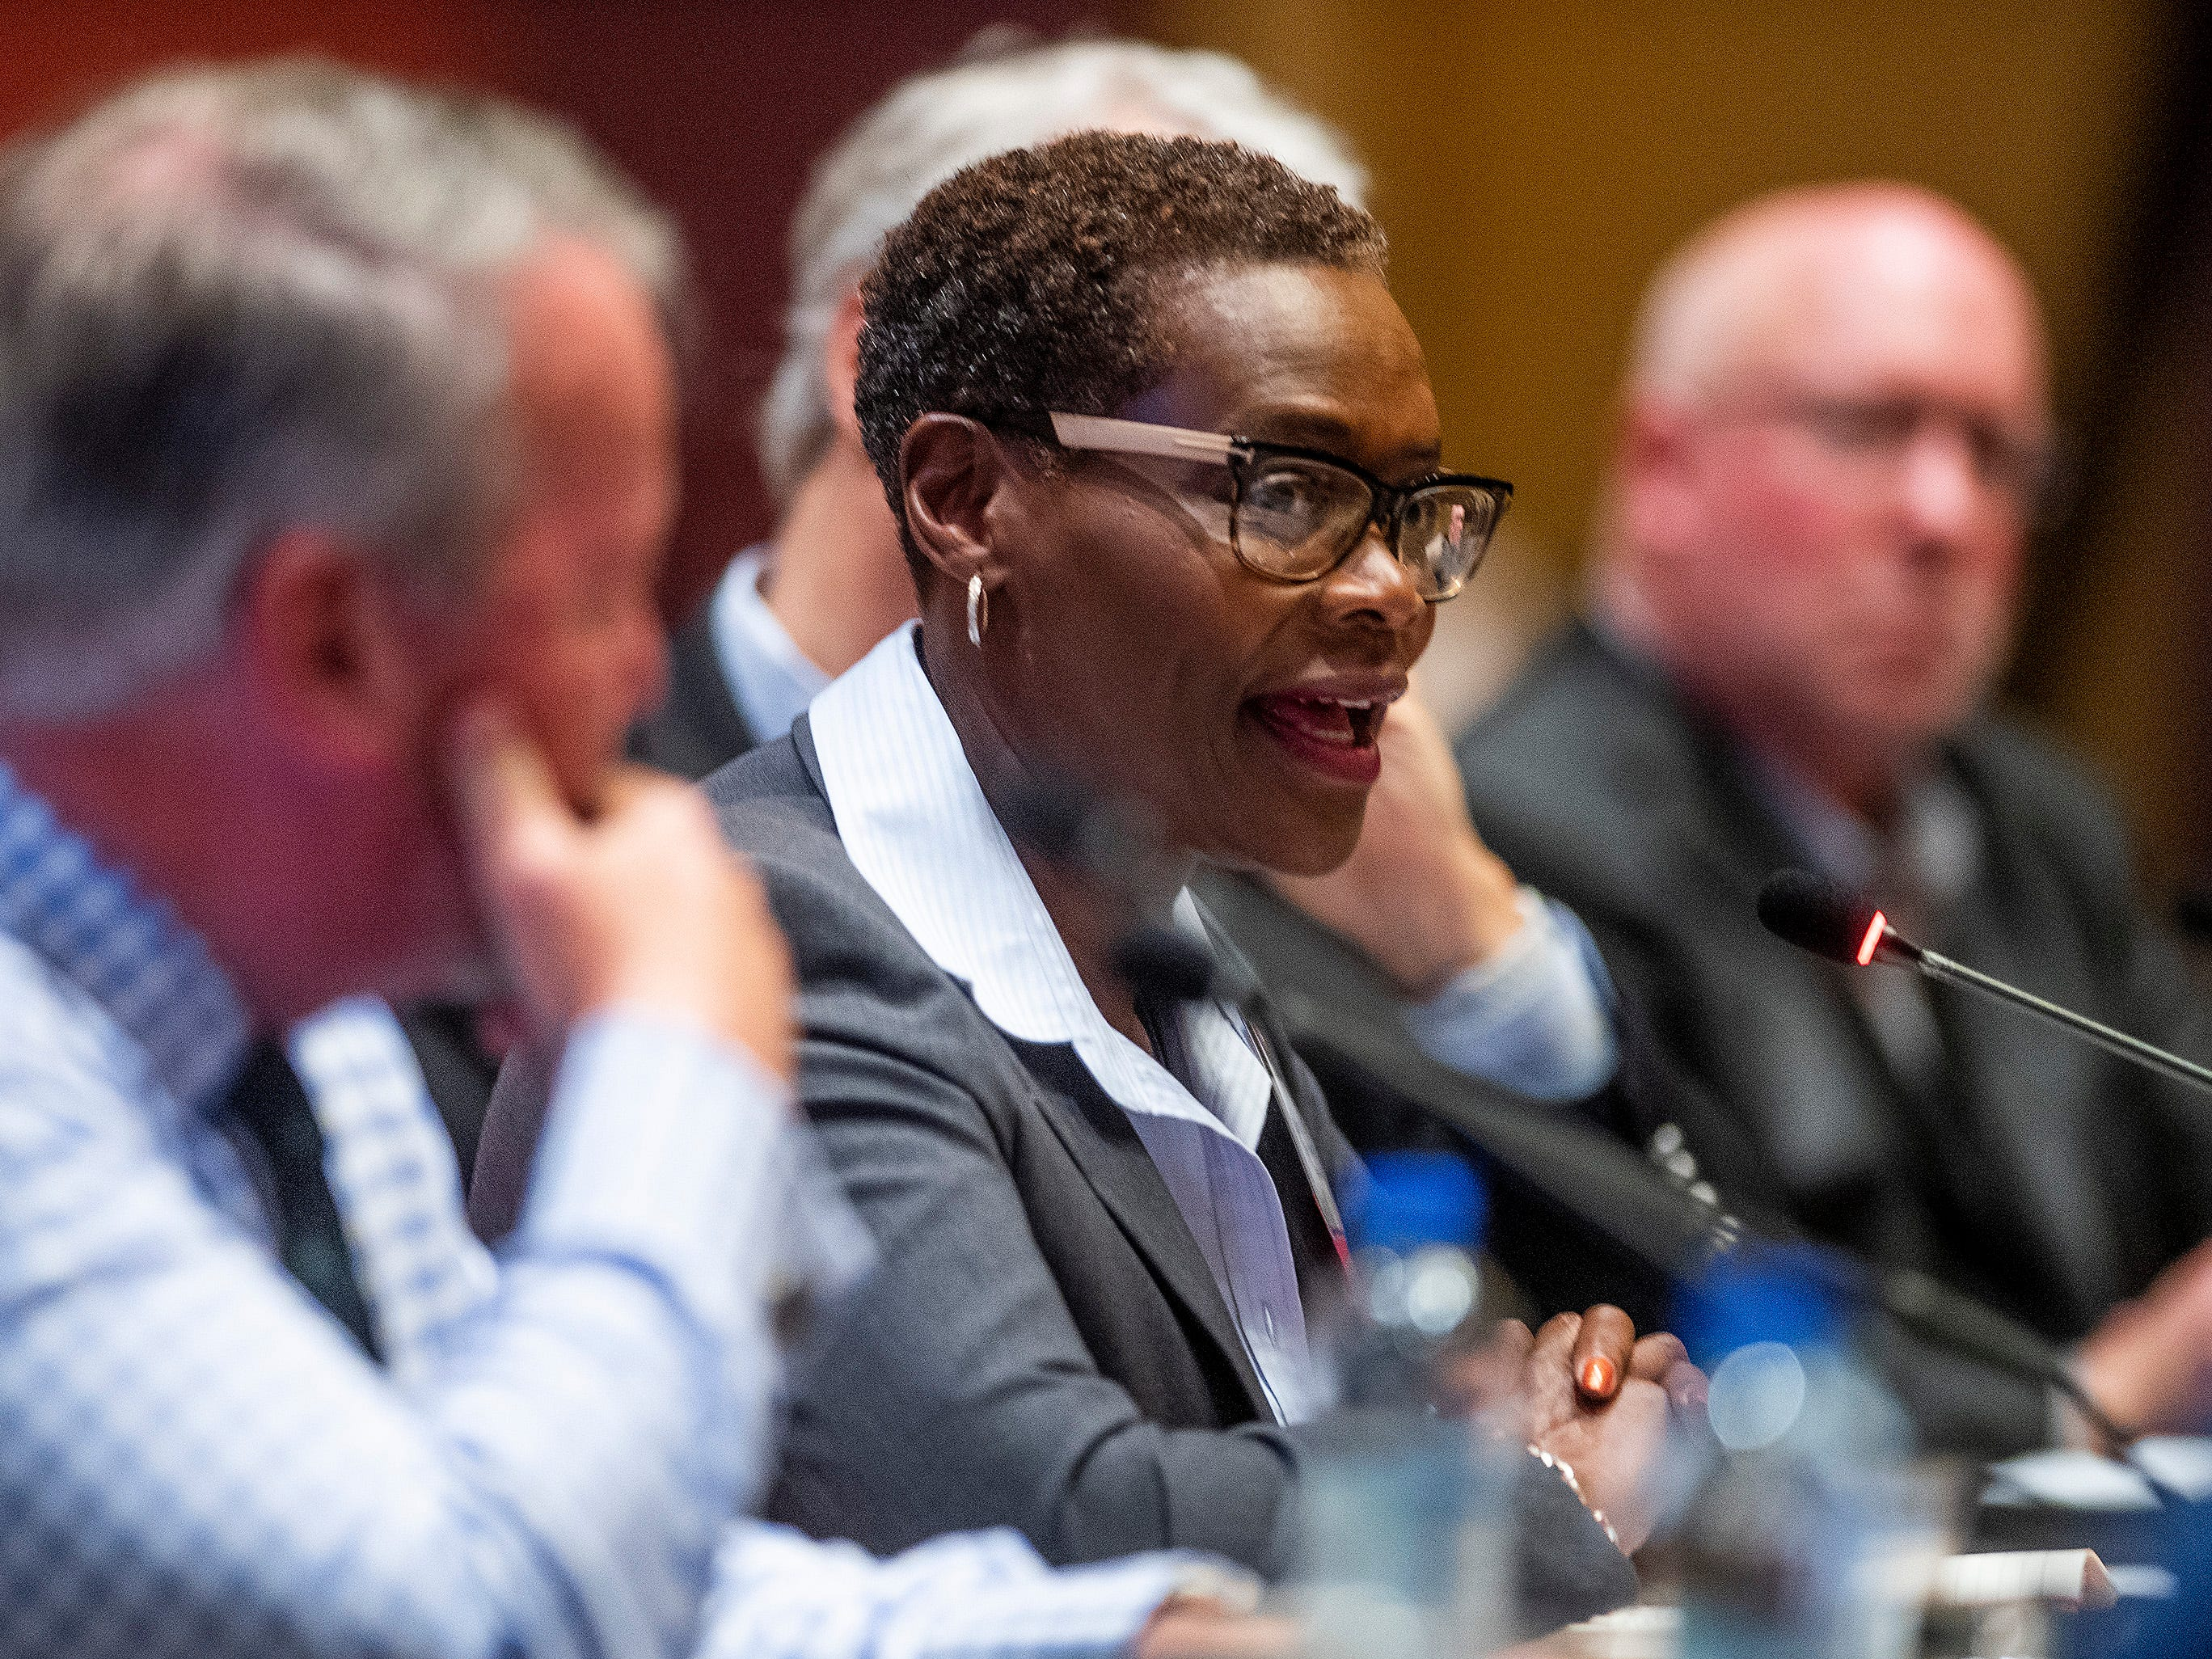 Mayor Elizabeth Carr-Hurst, of Fairborn, Ga., speaks during a summit of the U.S. Conference of Mayors in Montgomery, Ala., on Wednesday November 14, 2018 to address extremism, bigotry and divisiveness.